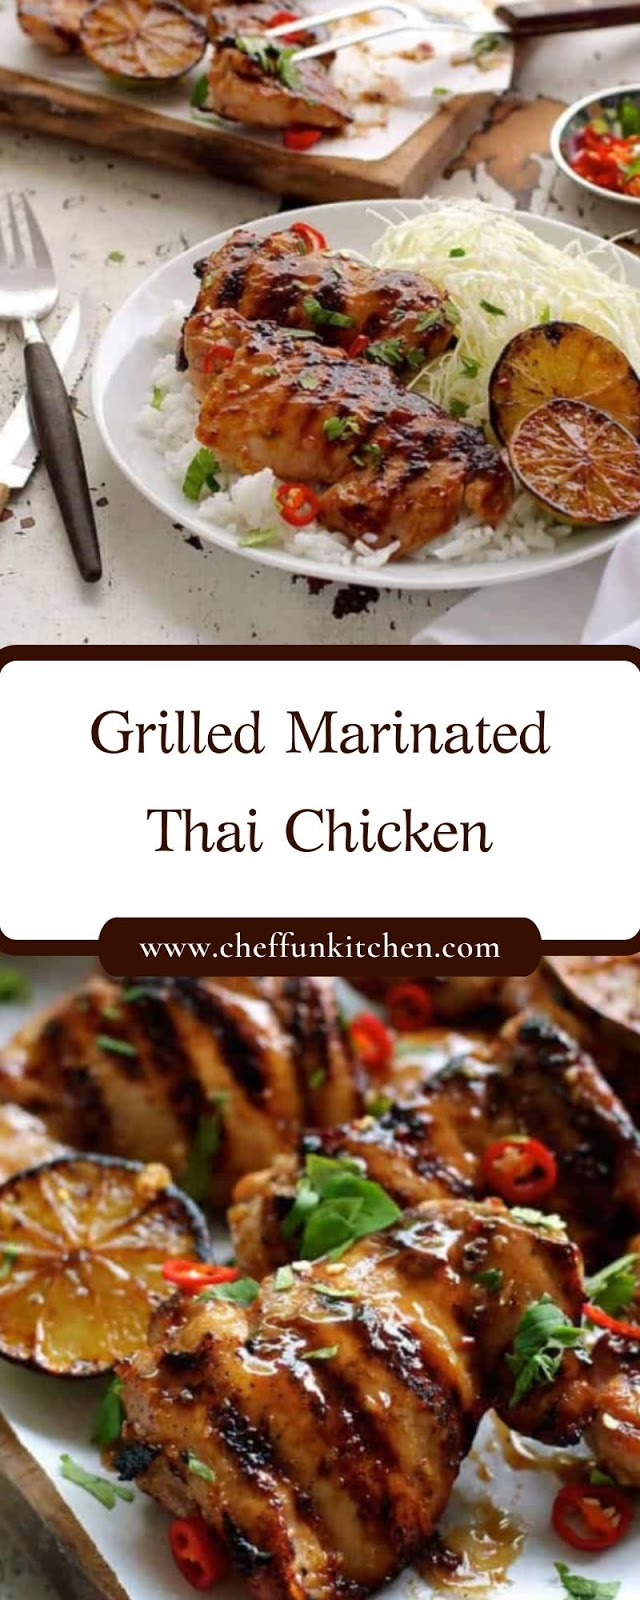 Grilled Marinated Thai Chicken